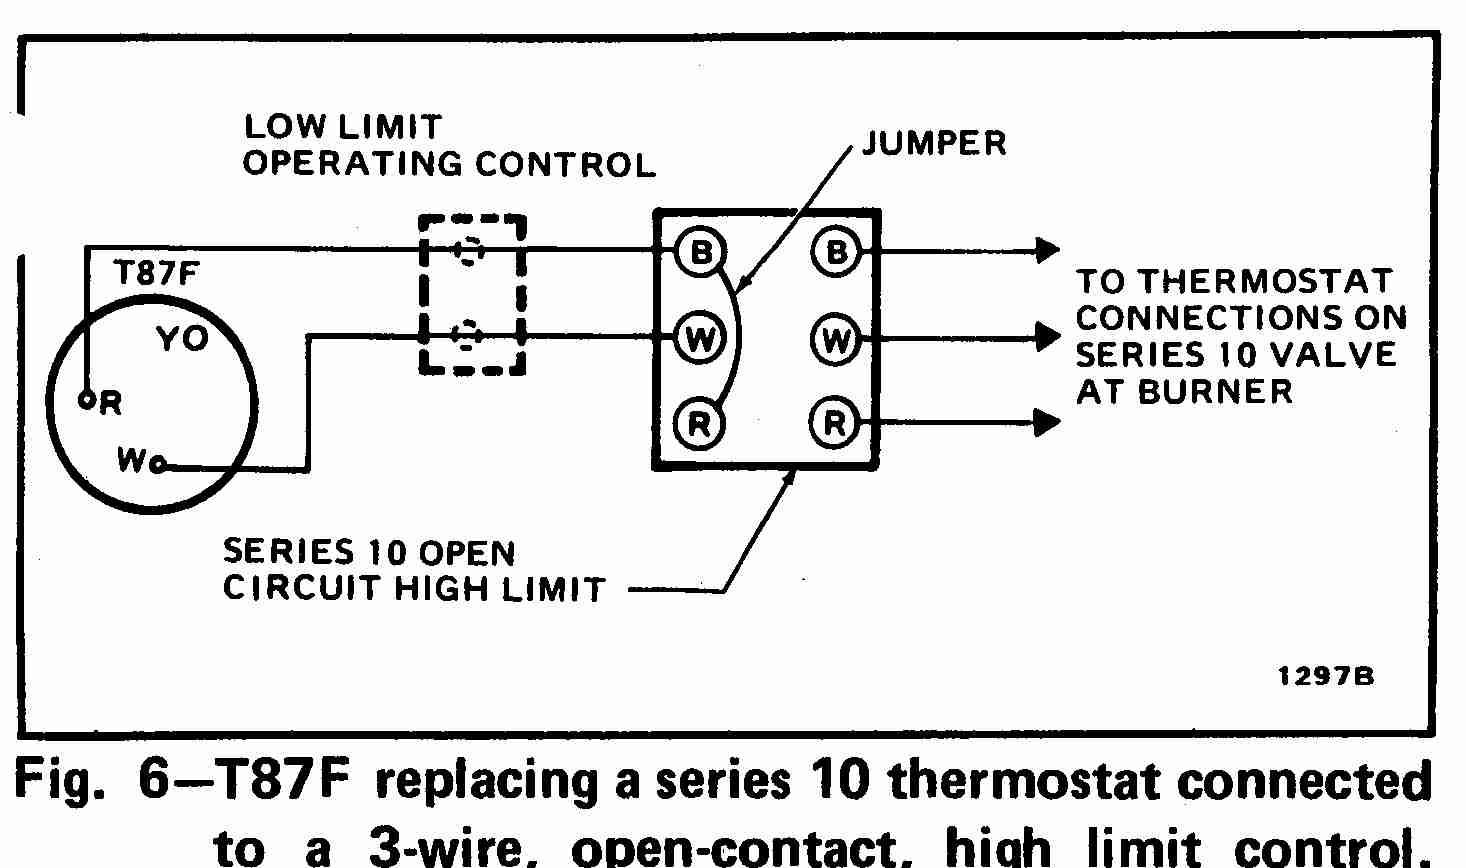 TT_T87F_0002_3WHL_DJF room thermostat wiring diagrams for hvac systems fcu wiring diagram at honlapkeszites.co